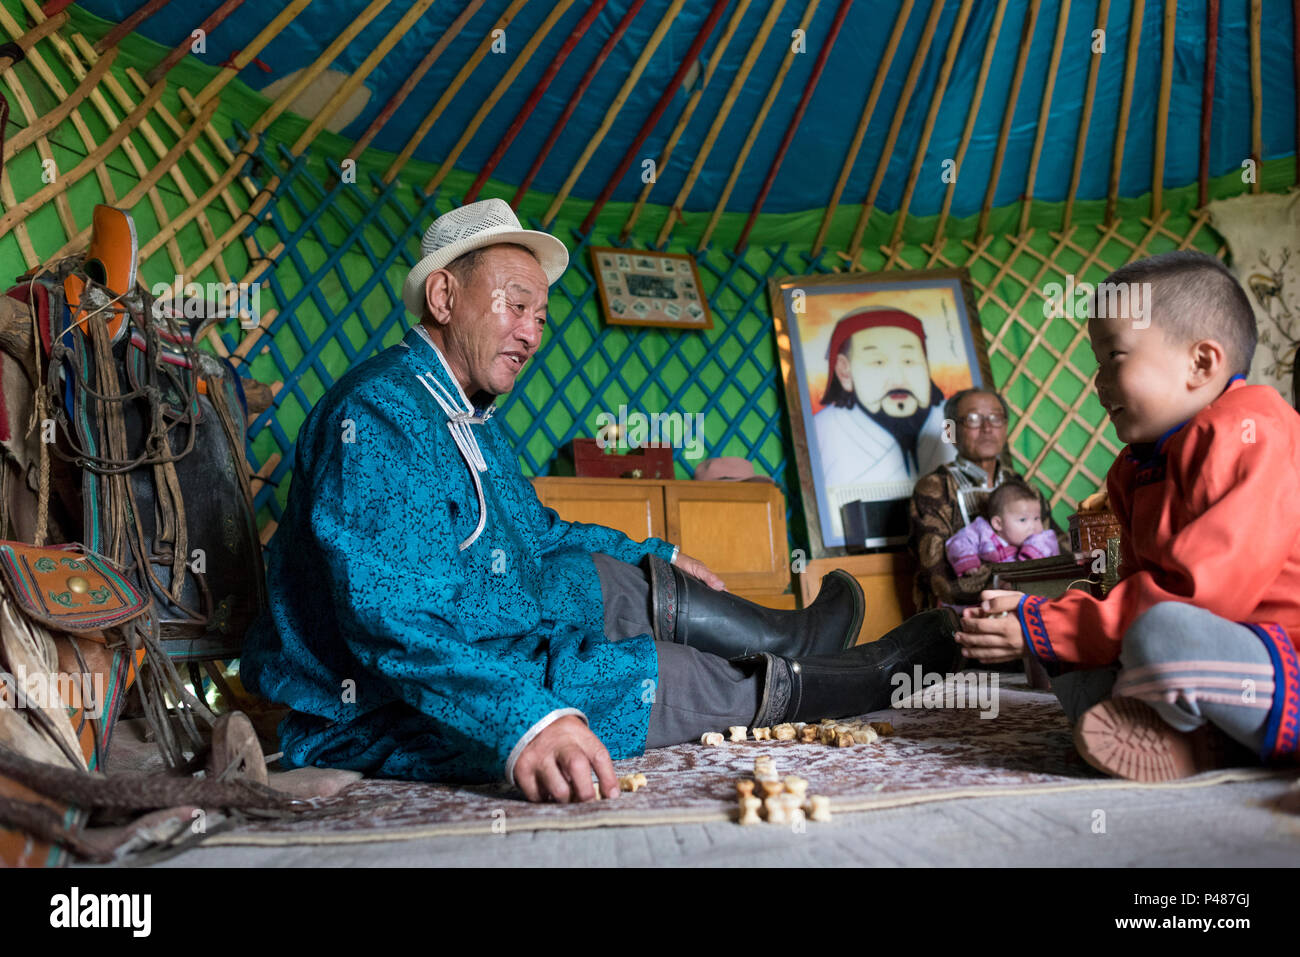 Father and son play game with animal bones inside their summertime yurt, Zhenglanqi Wuyi, Inner Mongolia - Stock Image